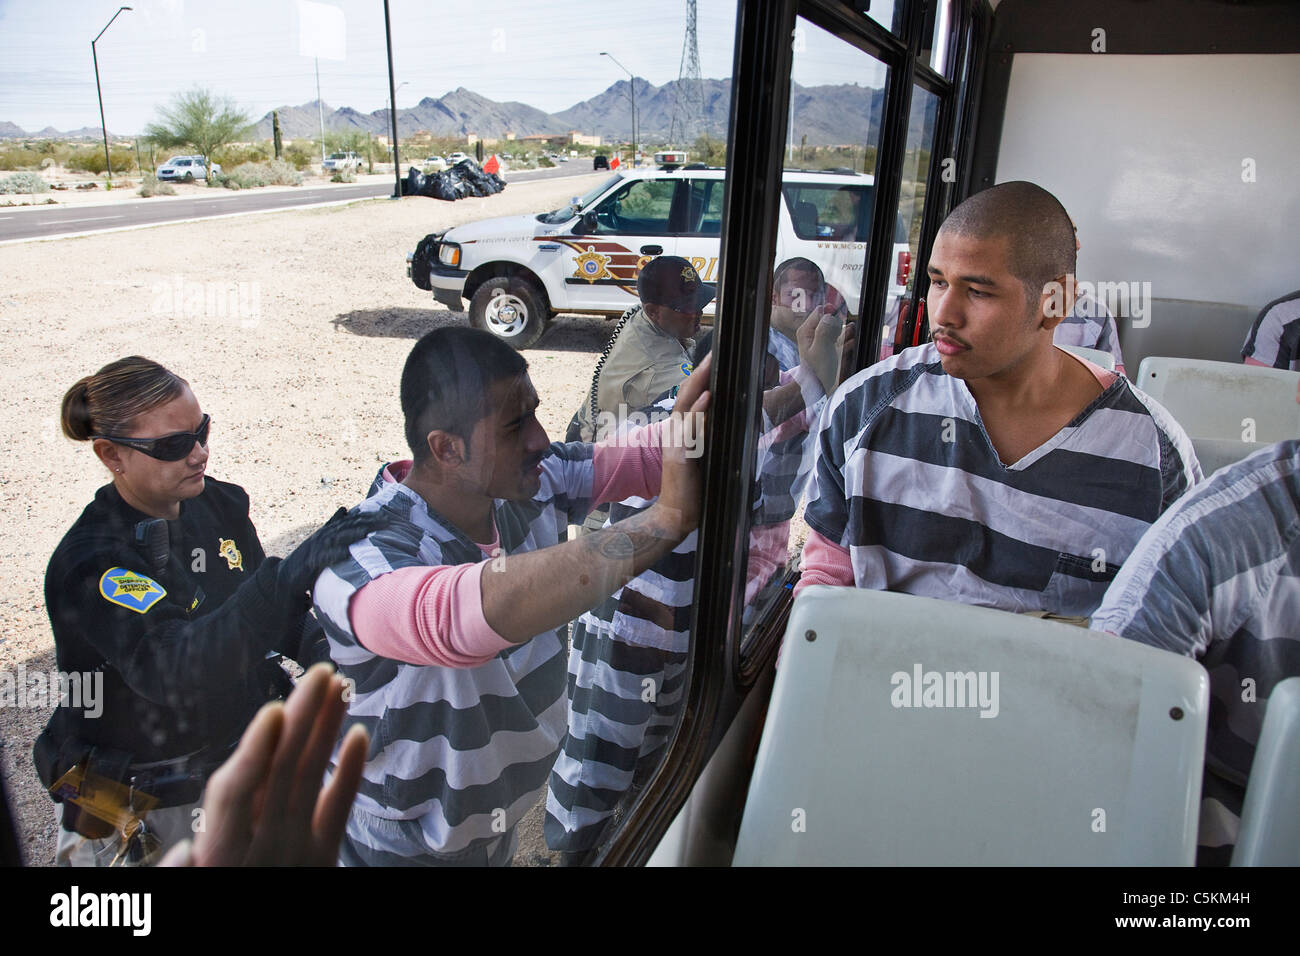 A Guard Searches Inmates For Contraband Near Phoenix Arizona Stock